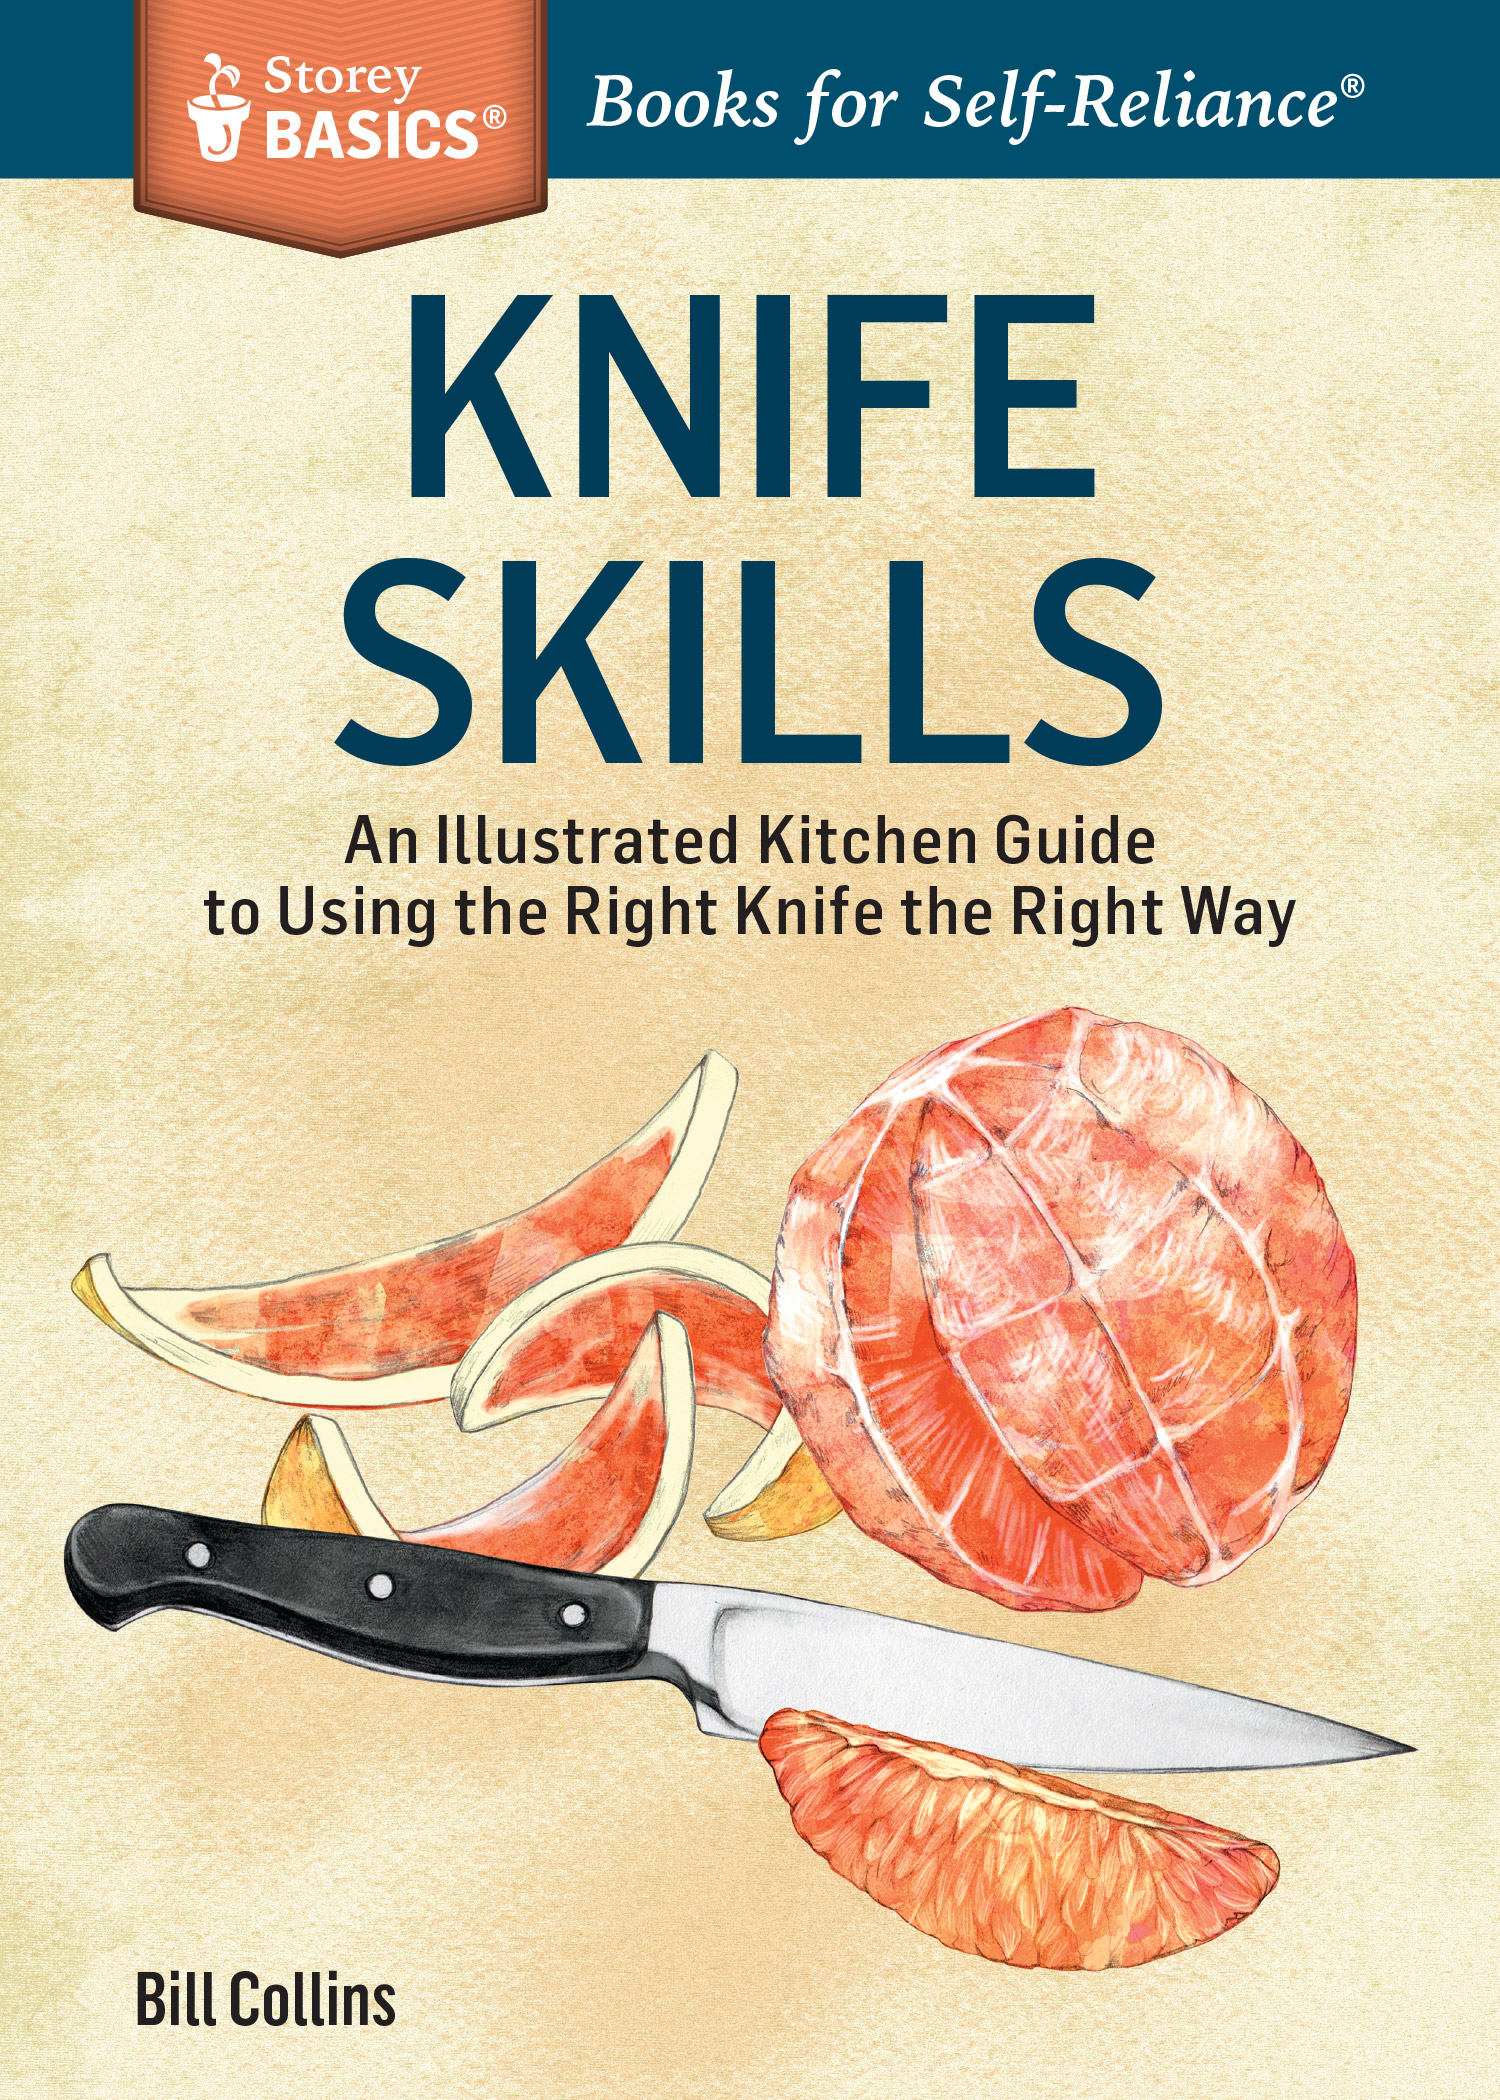 Knife Skills An Illustrated Kitchen Guide to Using the Right Knife the Right Way. A Storey BASICS® Title - Bill Collins